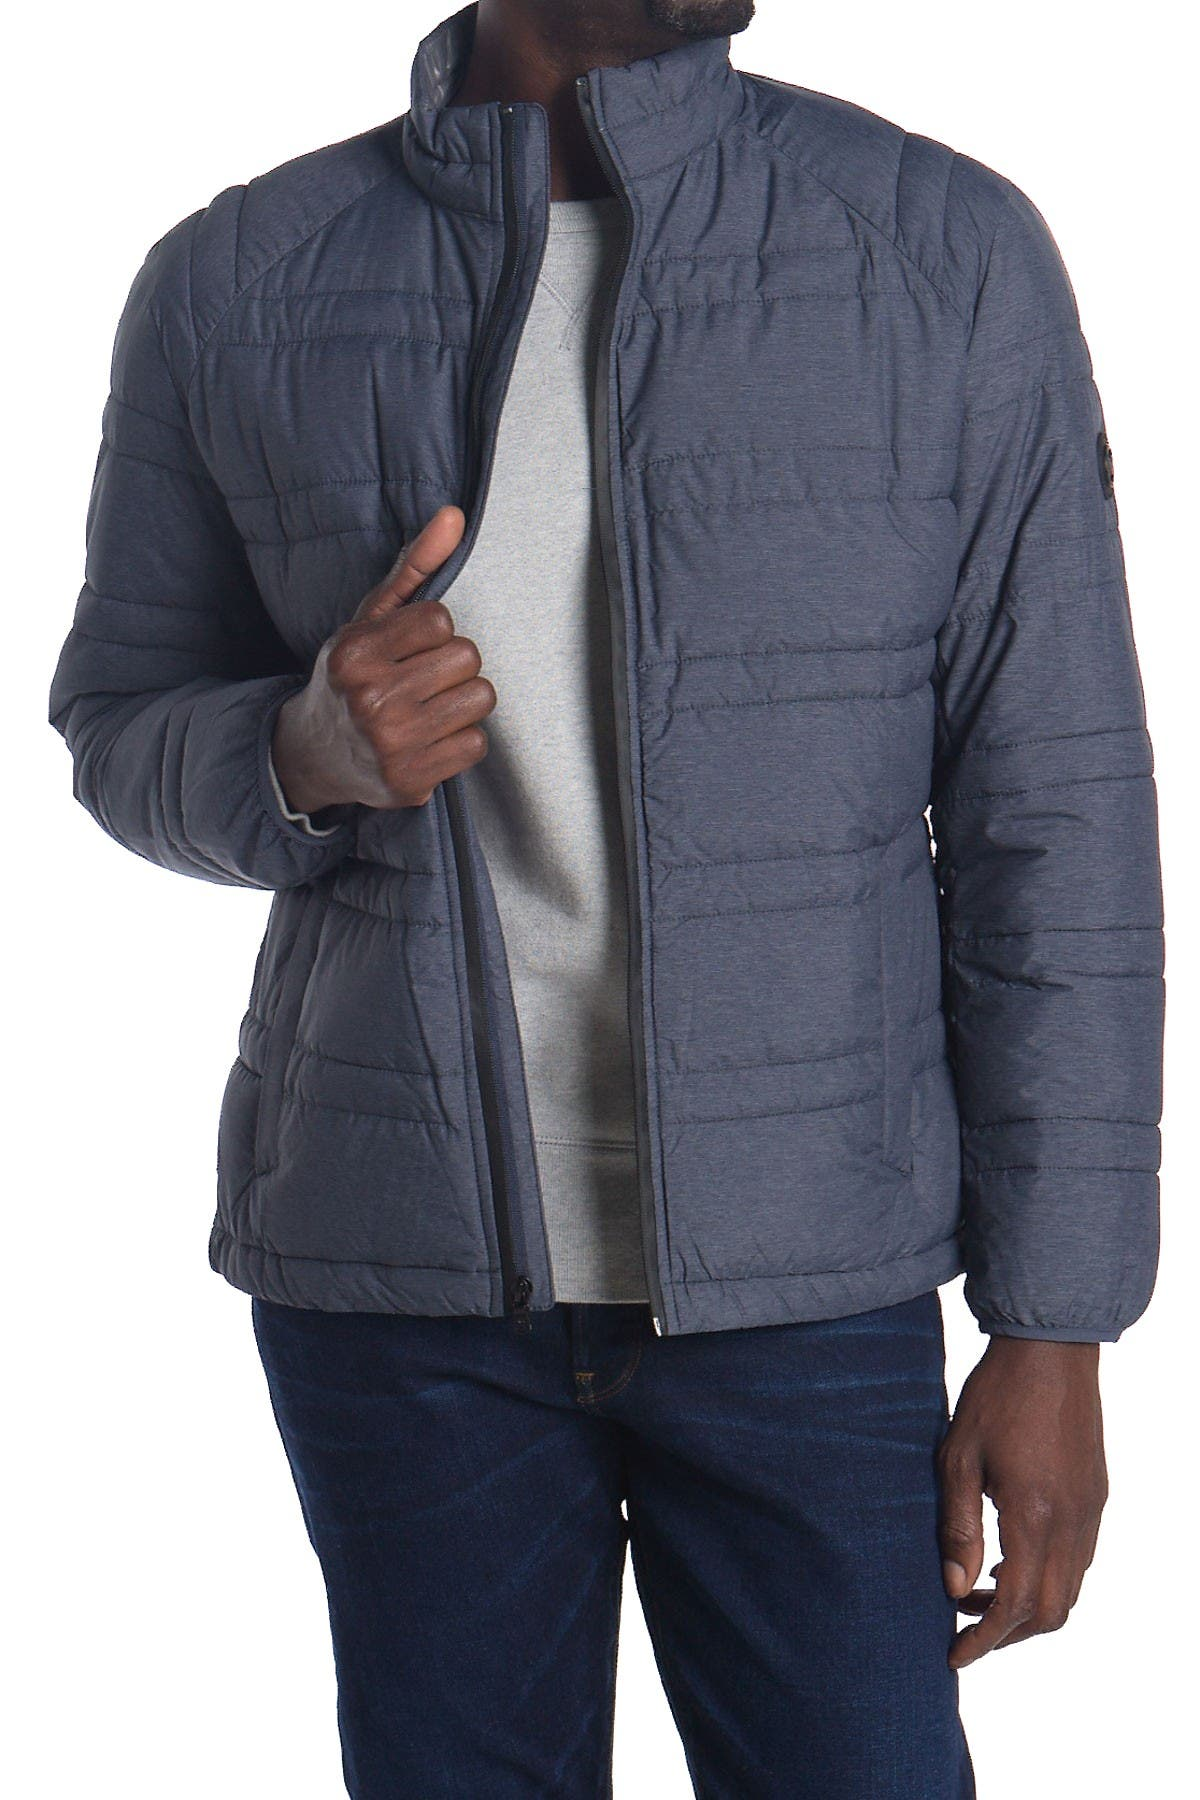 Image of Michael Kors Variegated Quilted Jacket